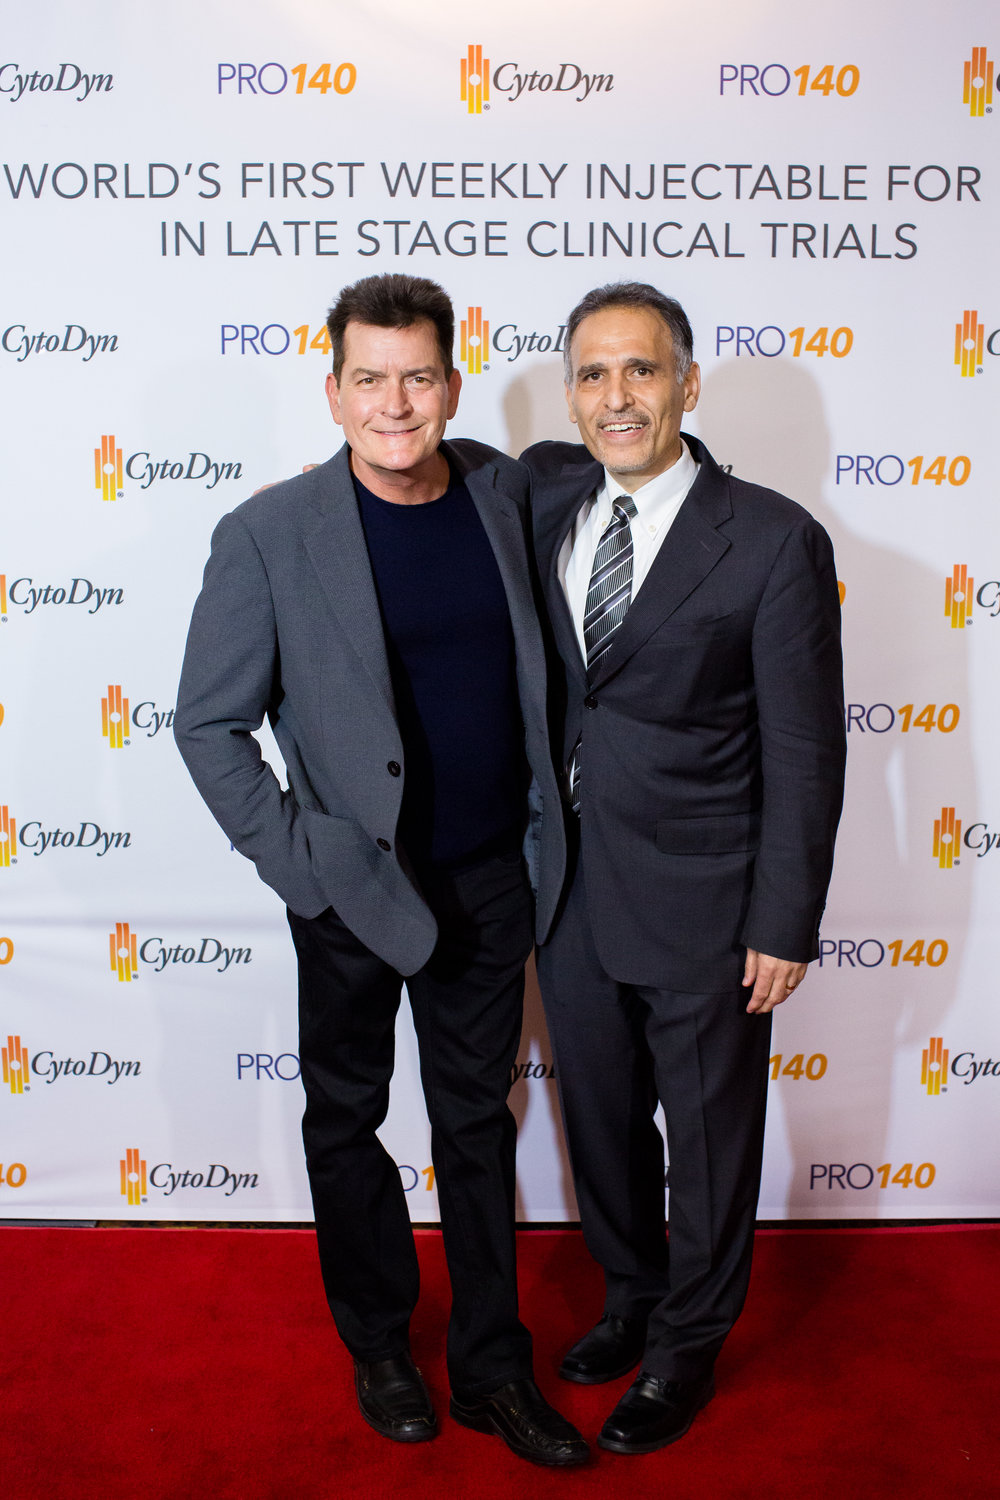 2017.05.04_HIV Awareness Event with Charlie Sheen_FINAL-6895.jpg